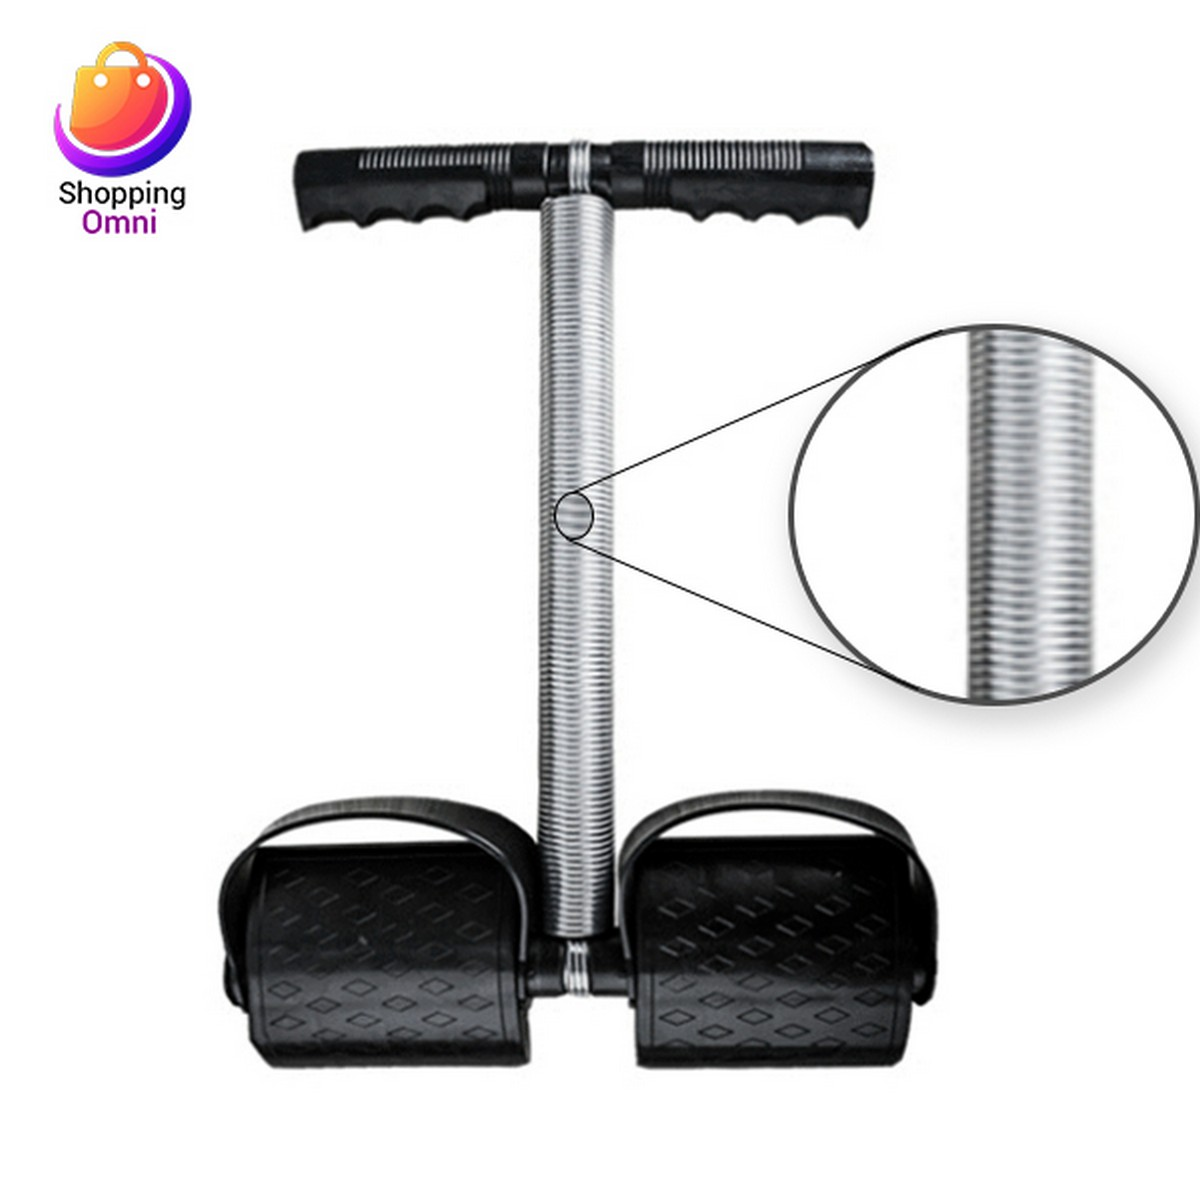 High Quality Tummy Trimmer Single Spring Exercise Home Gym Belly Fat Burner Body Fitness Weight Loss Home Gym 13-Inches Single Spring Quick Belly Fat Loss Trimmer Machine For Men and Women